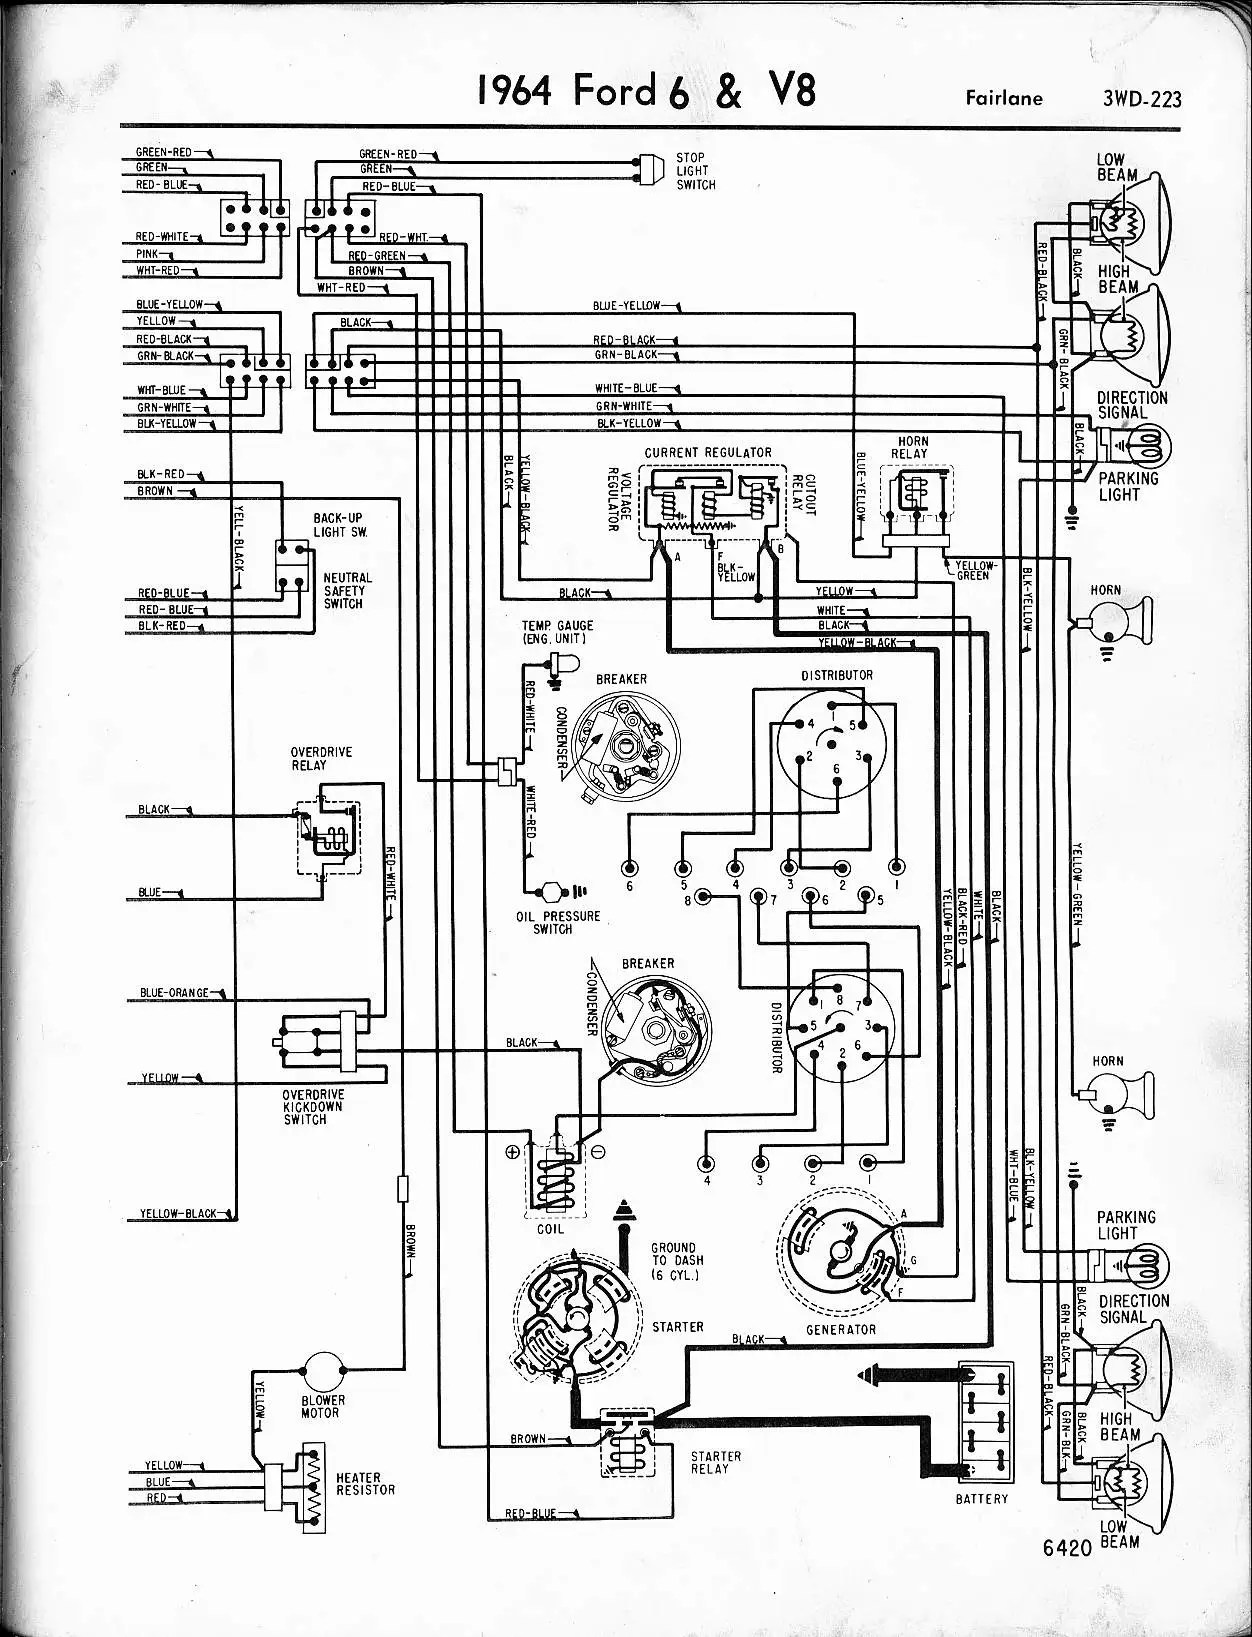 medium resolution of 64 f100 wiring diagram wiring schematic data ford pinto ignition wiring diagram 64 f100 wiring diagram